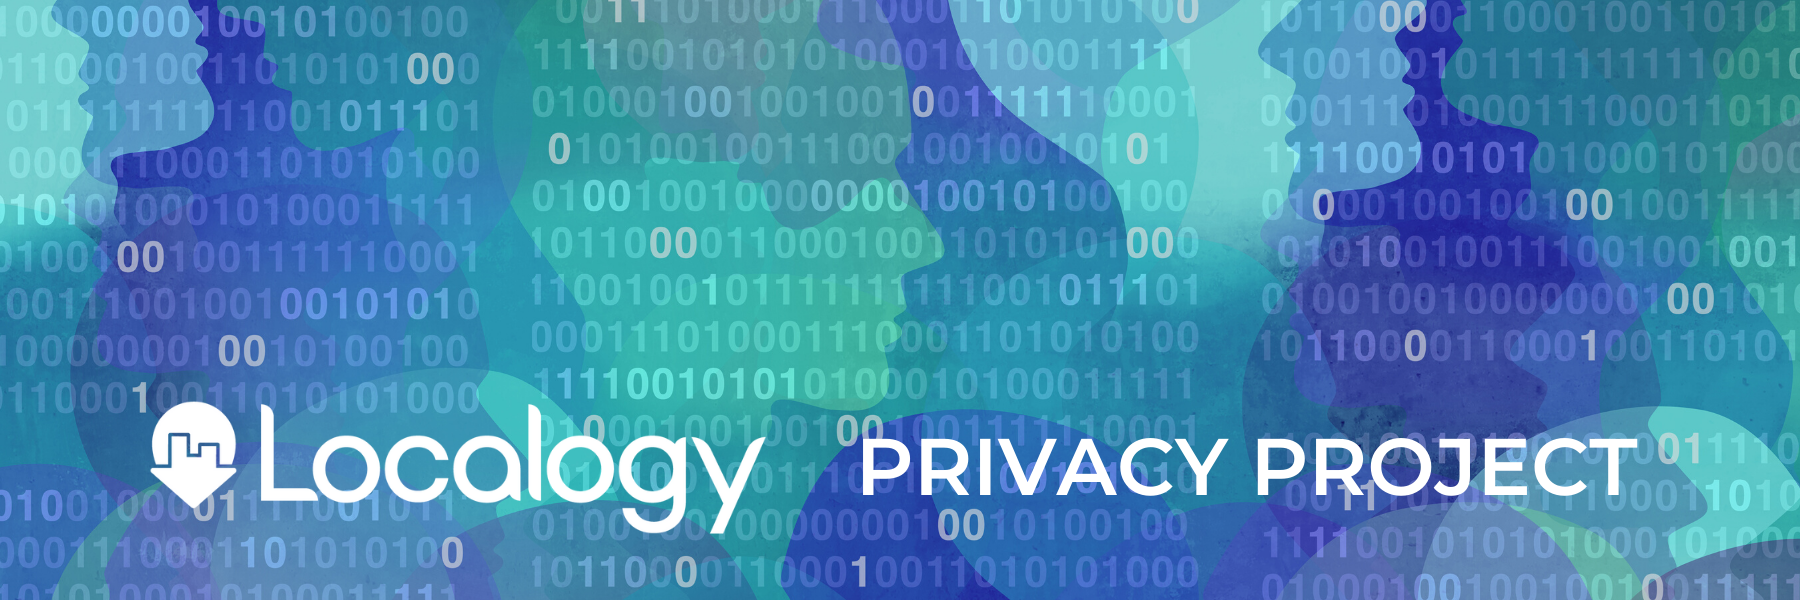 Localogy Privacy Project